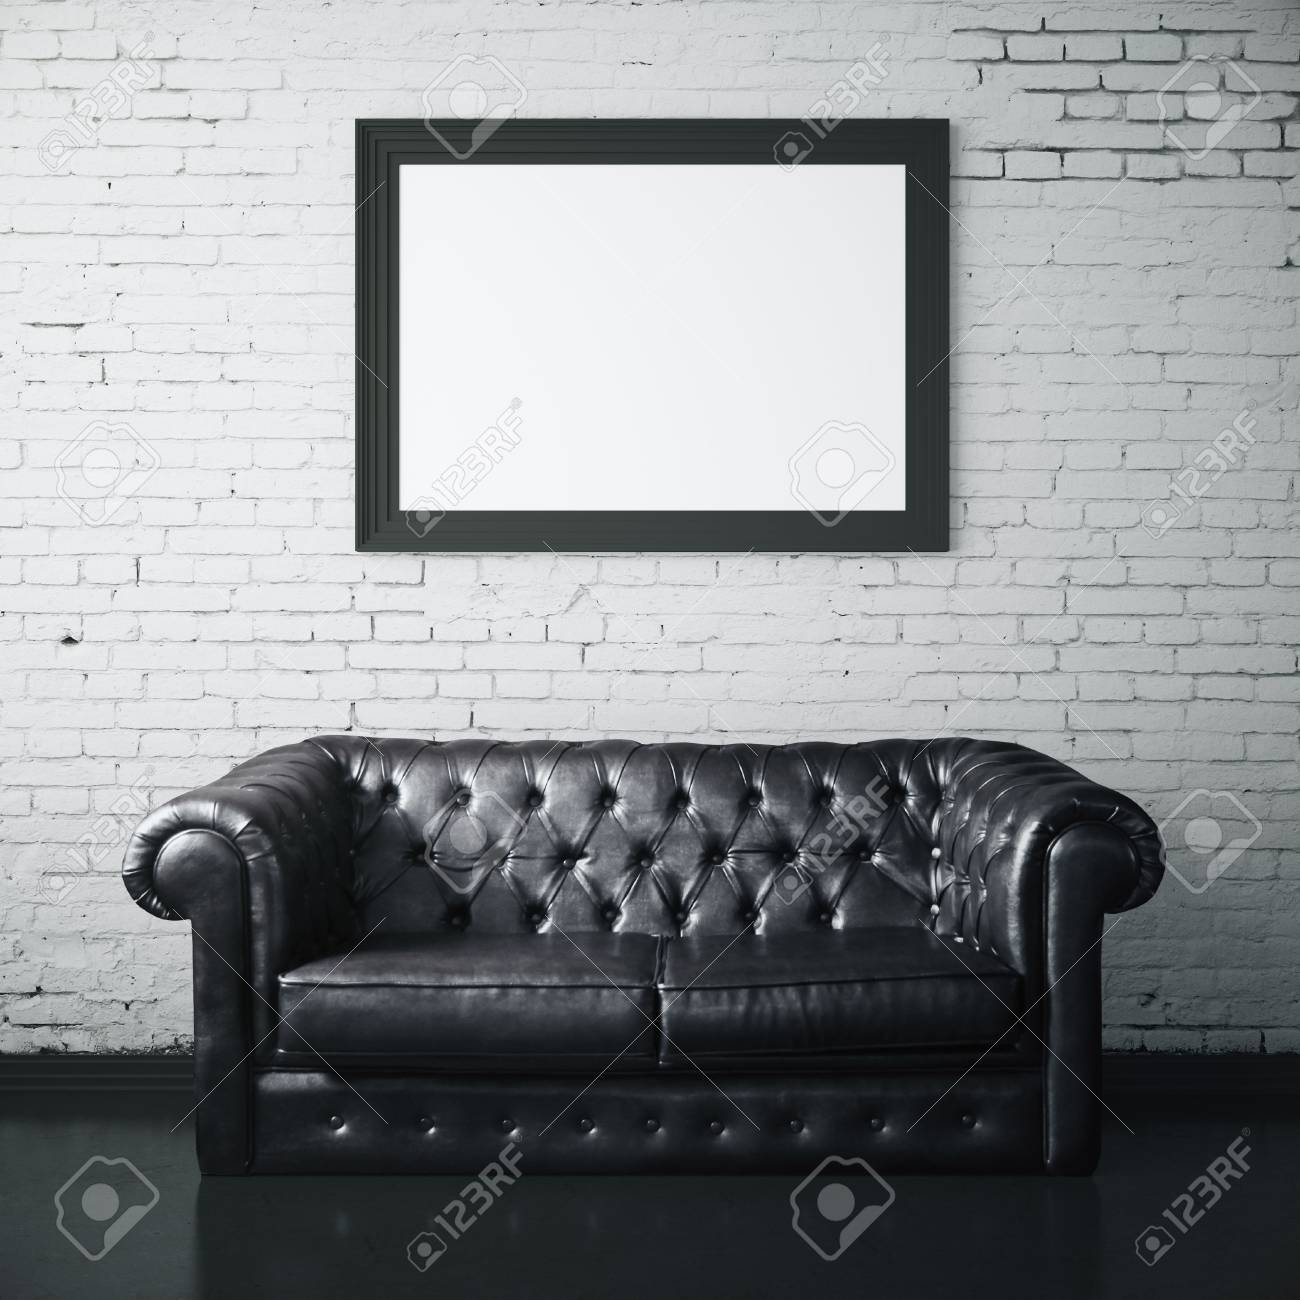 Stock Photo   White Brick Interior With Dark Leather Sofa And Blank Picture  Frame. Mock Up, 3D Rendering